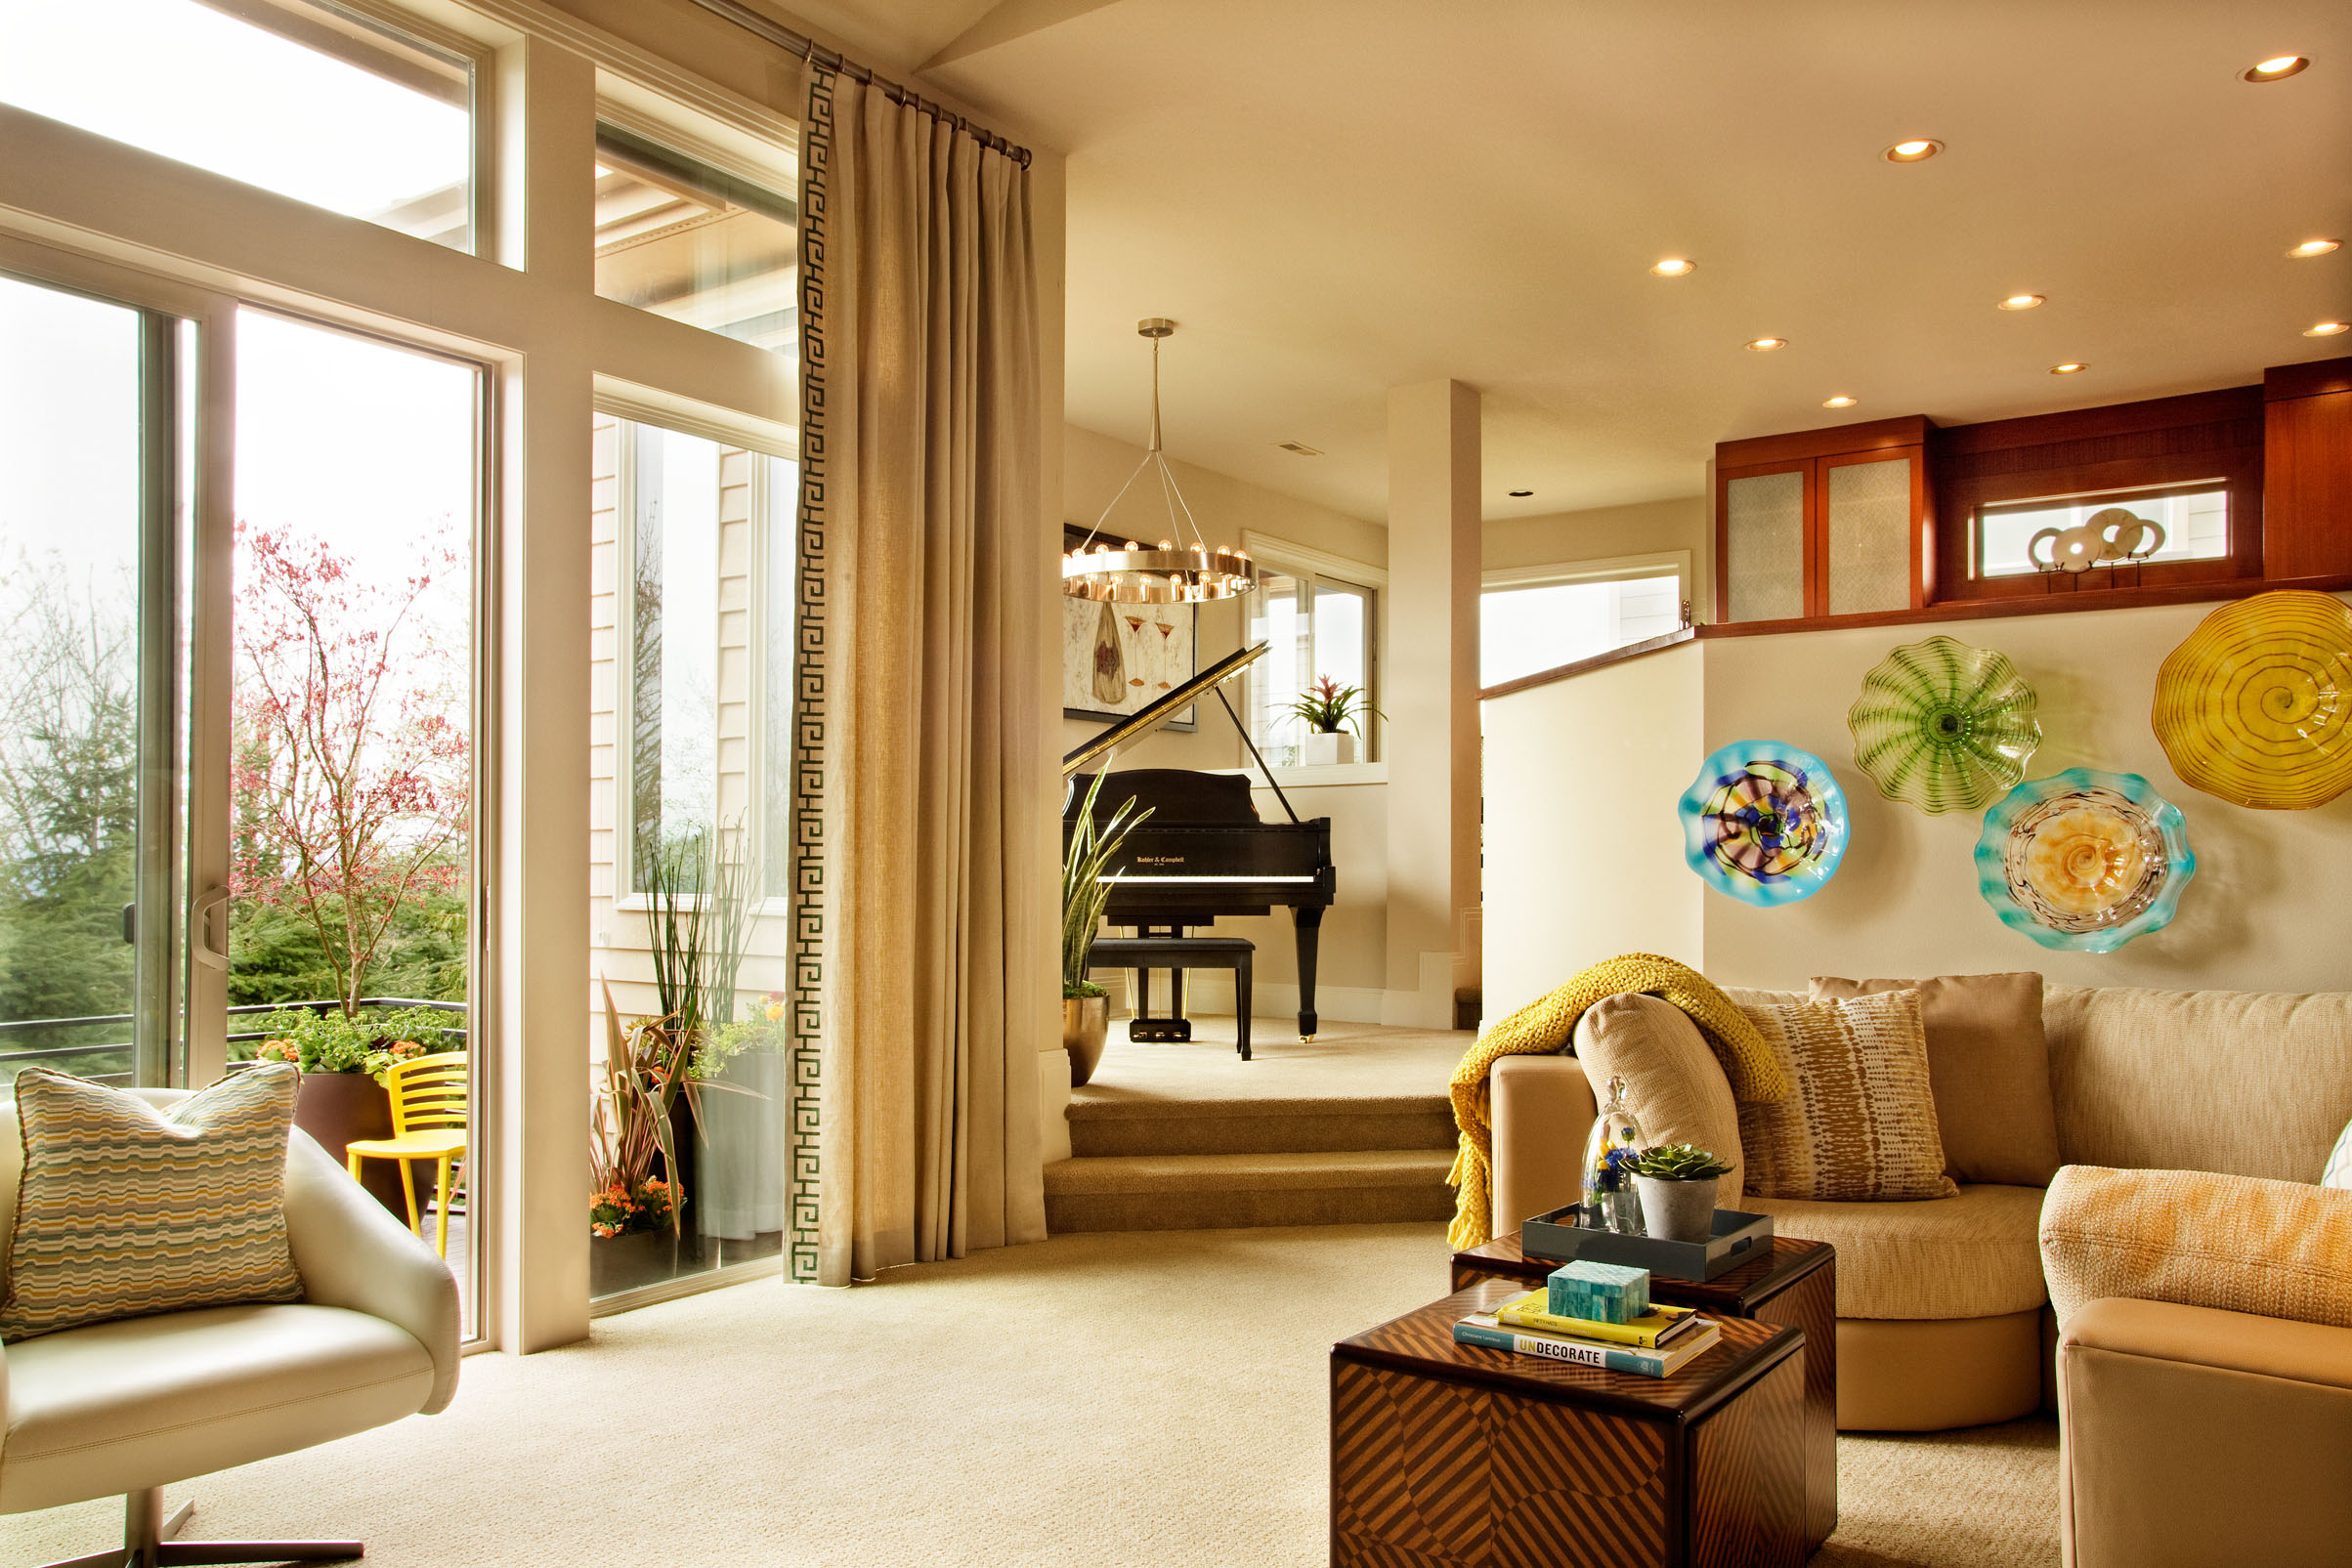 homes with pianos in them, how to decorate a room around your piano, utilizing large windows to accentuate interior design